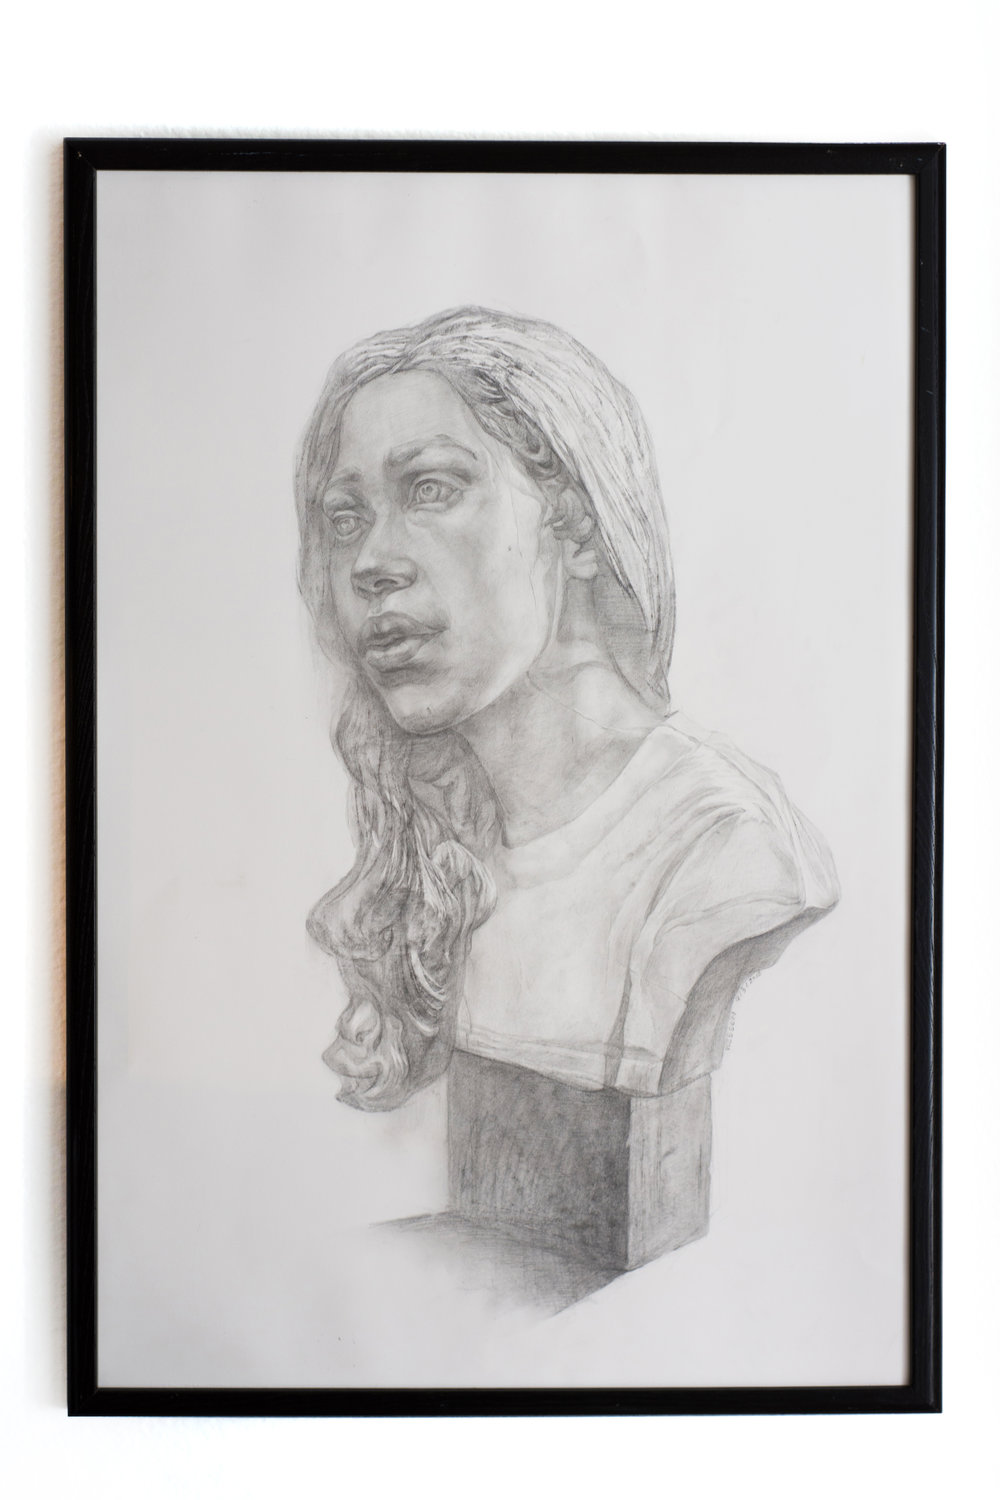 20*30in  September, 2018  charcoal on paper